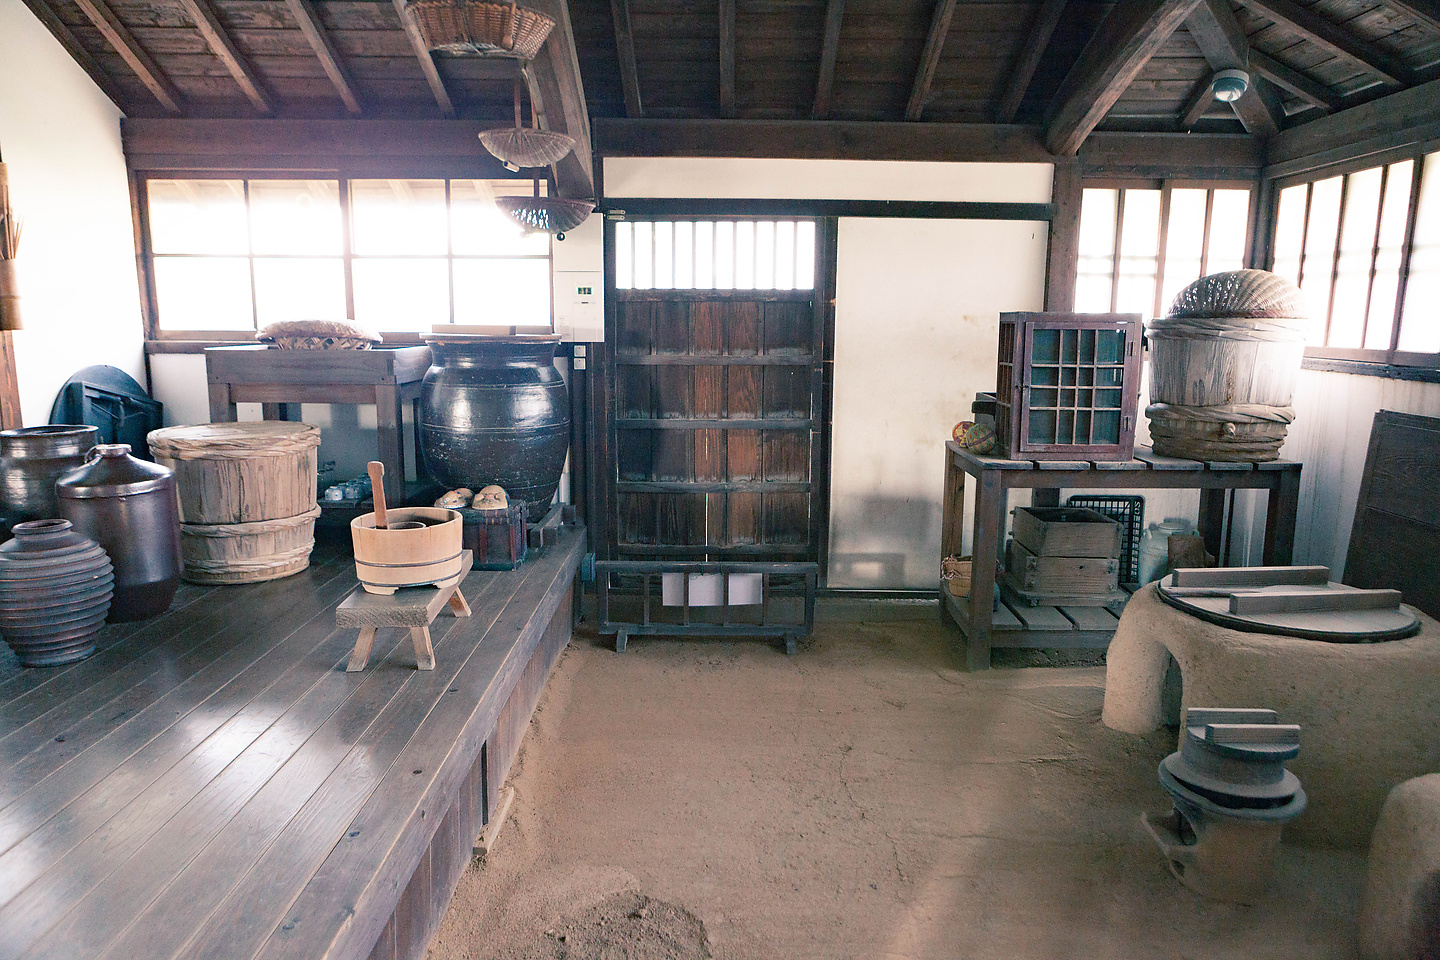 Reclamation village – Isahaya Kantaku no Sato